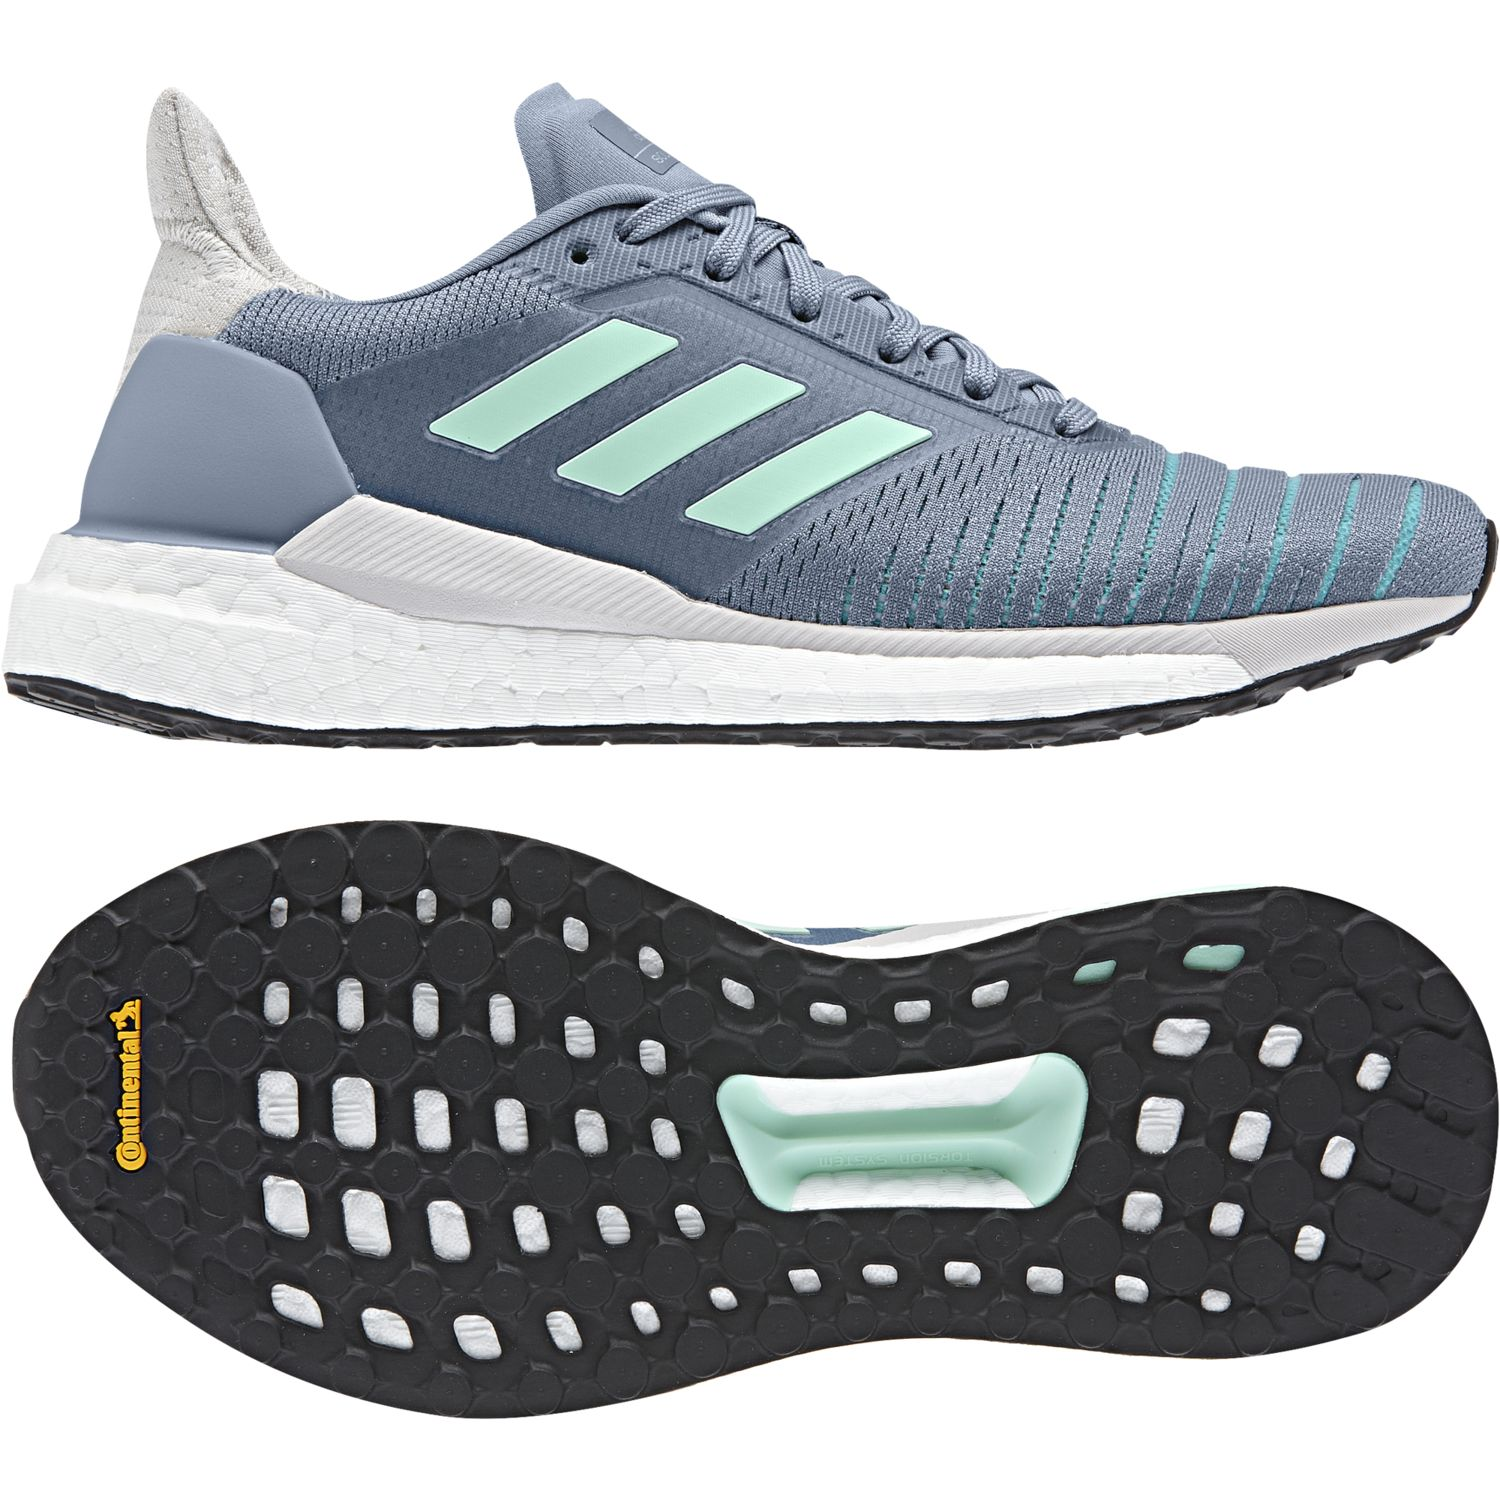 Adidas - Chaussures femme Solar Glide gris/vert turquoise/vert turquoise - pas cher Achat / Vente Chaussures running